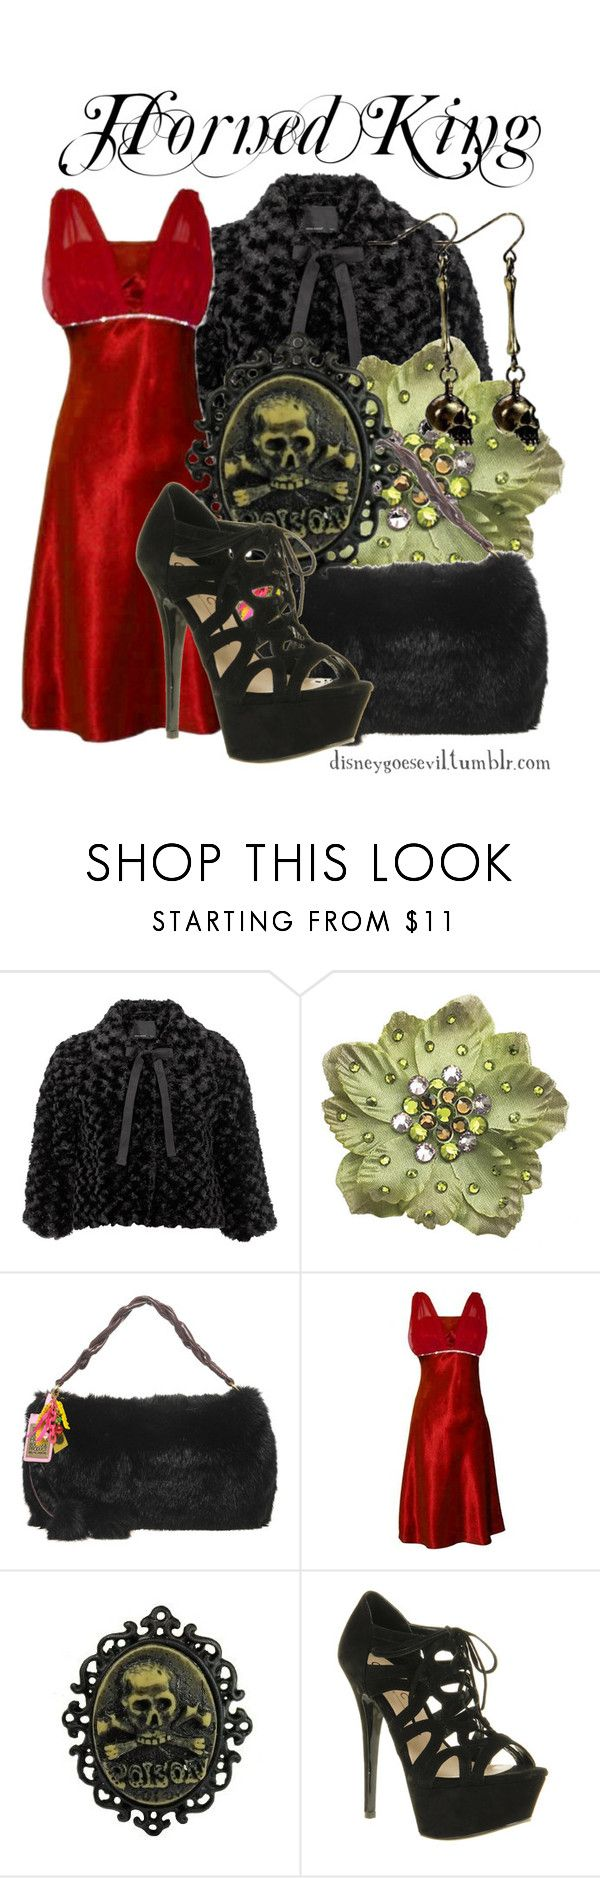 """Horned King"" by disney-villains ❤ liked on Polyvore featuring Vero Moda, Tarina Tarantino, Paul's Boutique, PacificPlex and Office"